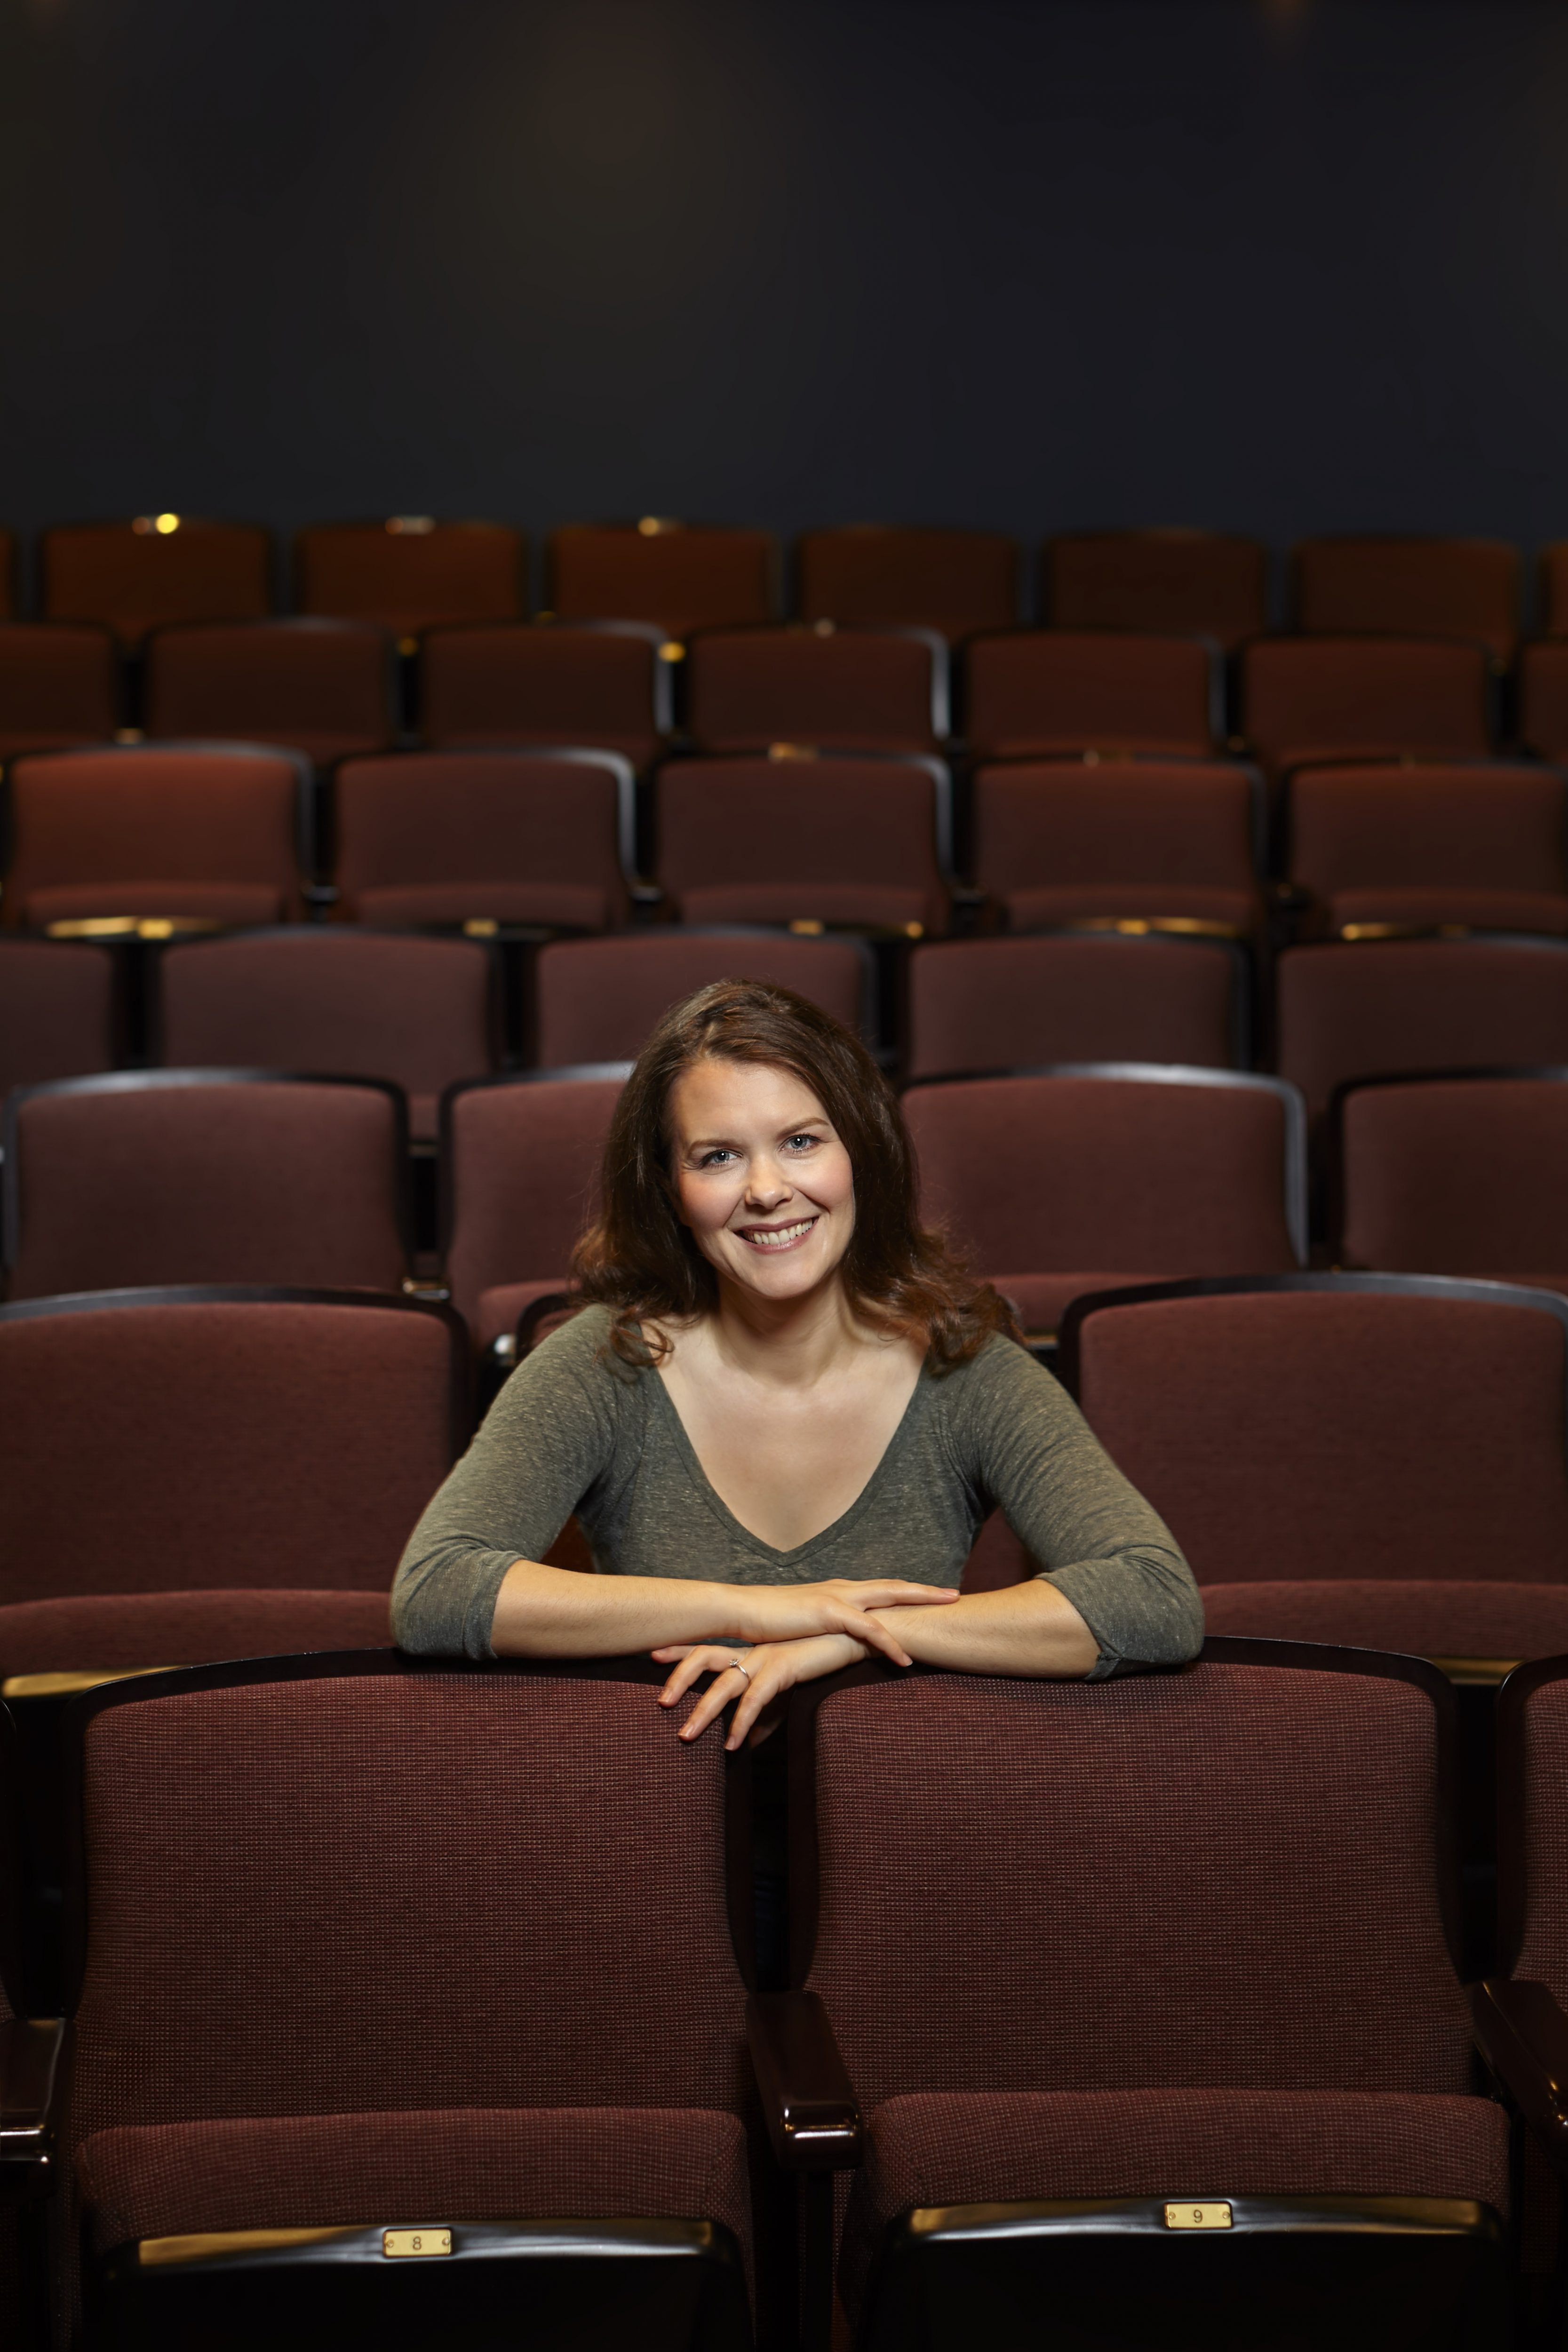 Celine Stubel sits with her arms folded across the back of the new seats.